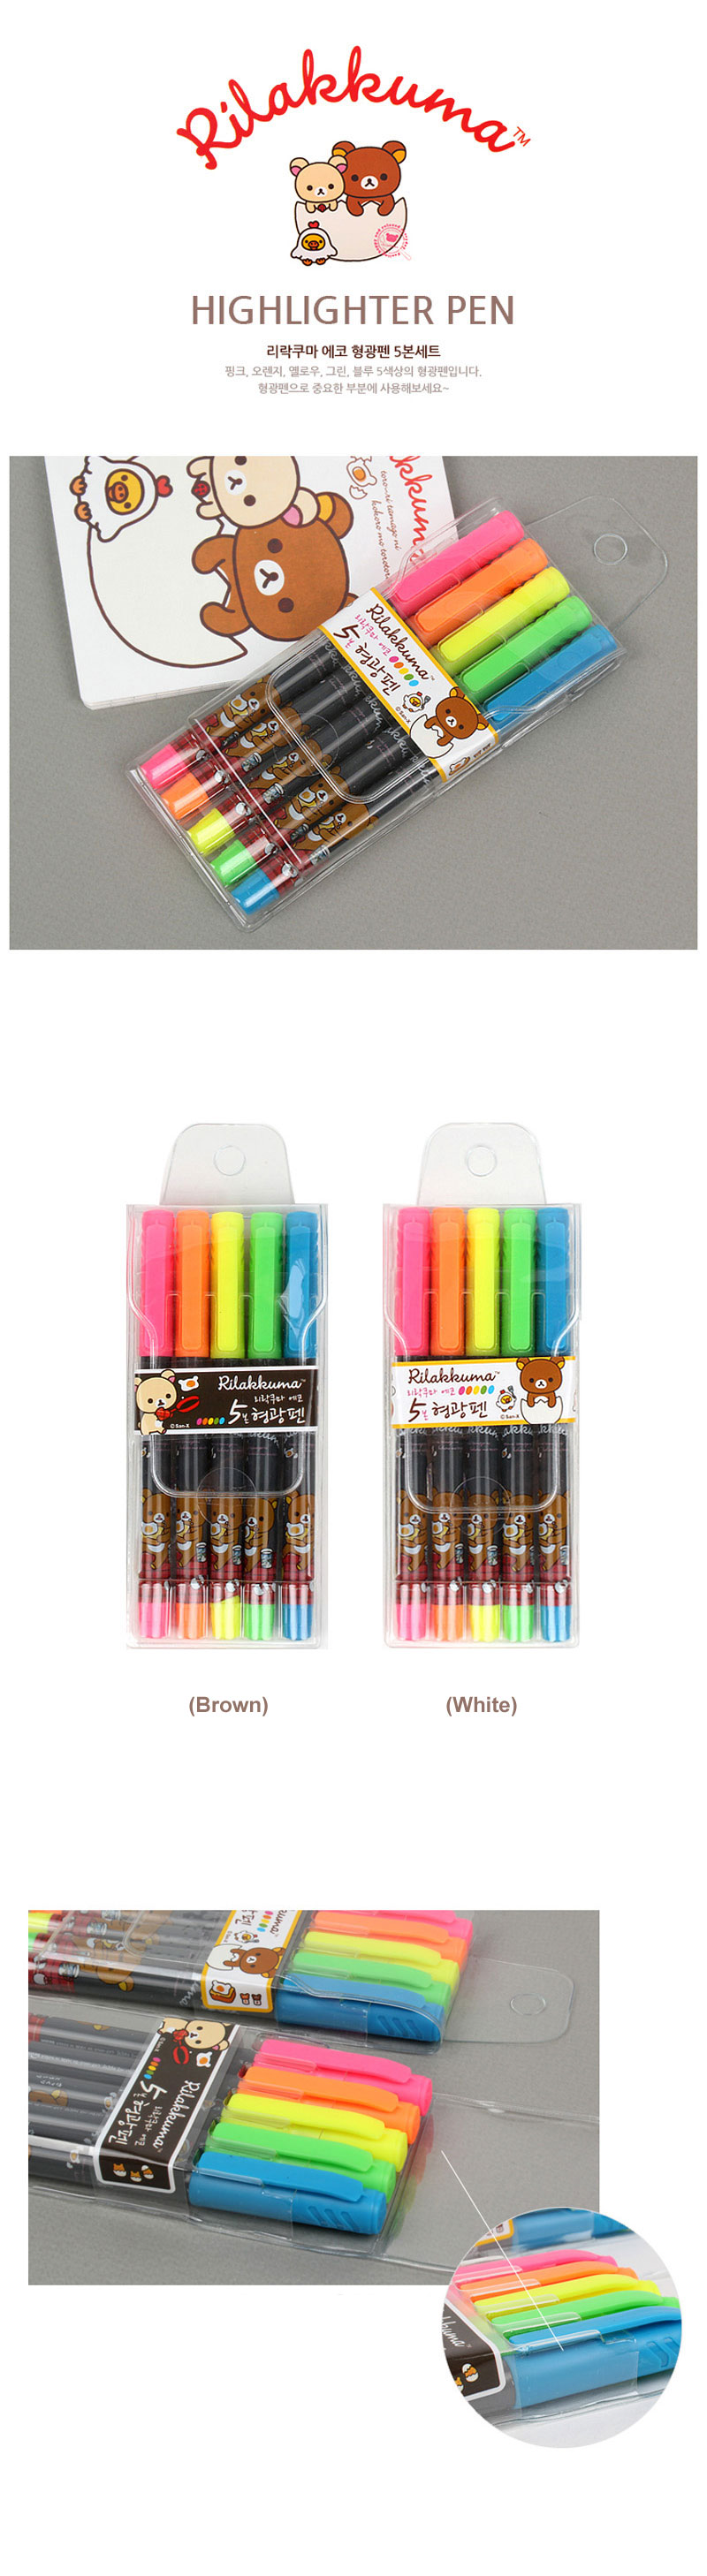 Rilakkuma Colorful Highlighter Marker Pens With 5 Colors